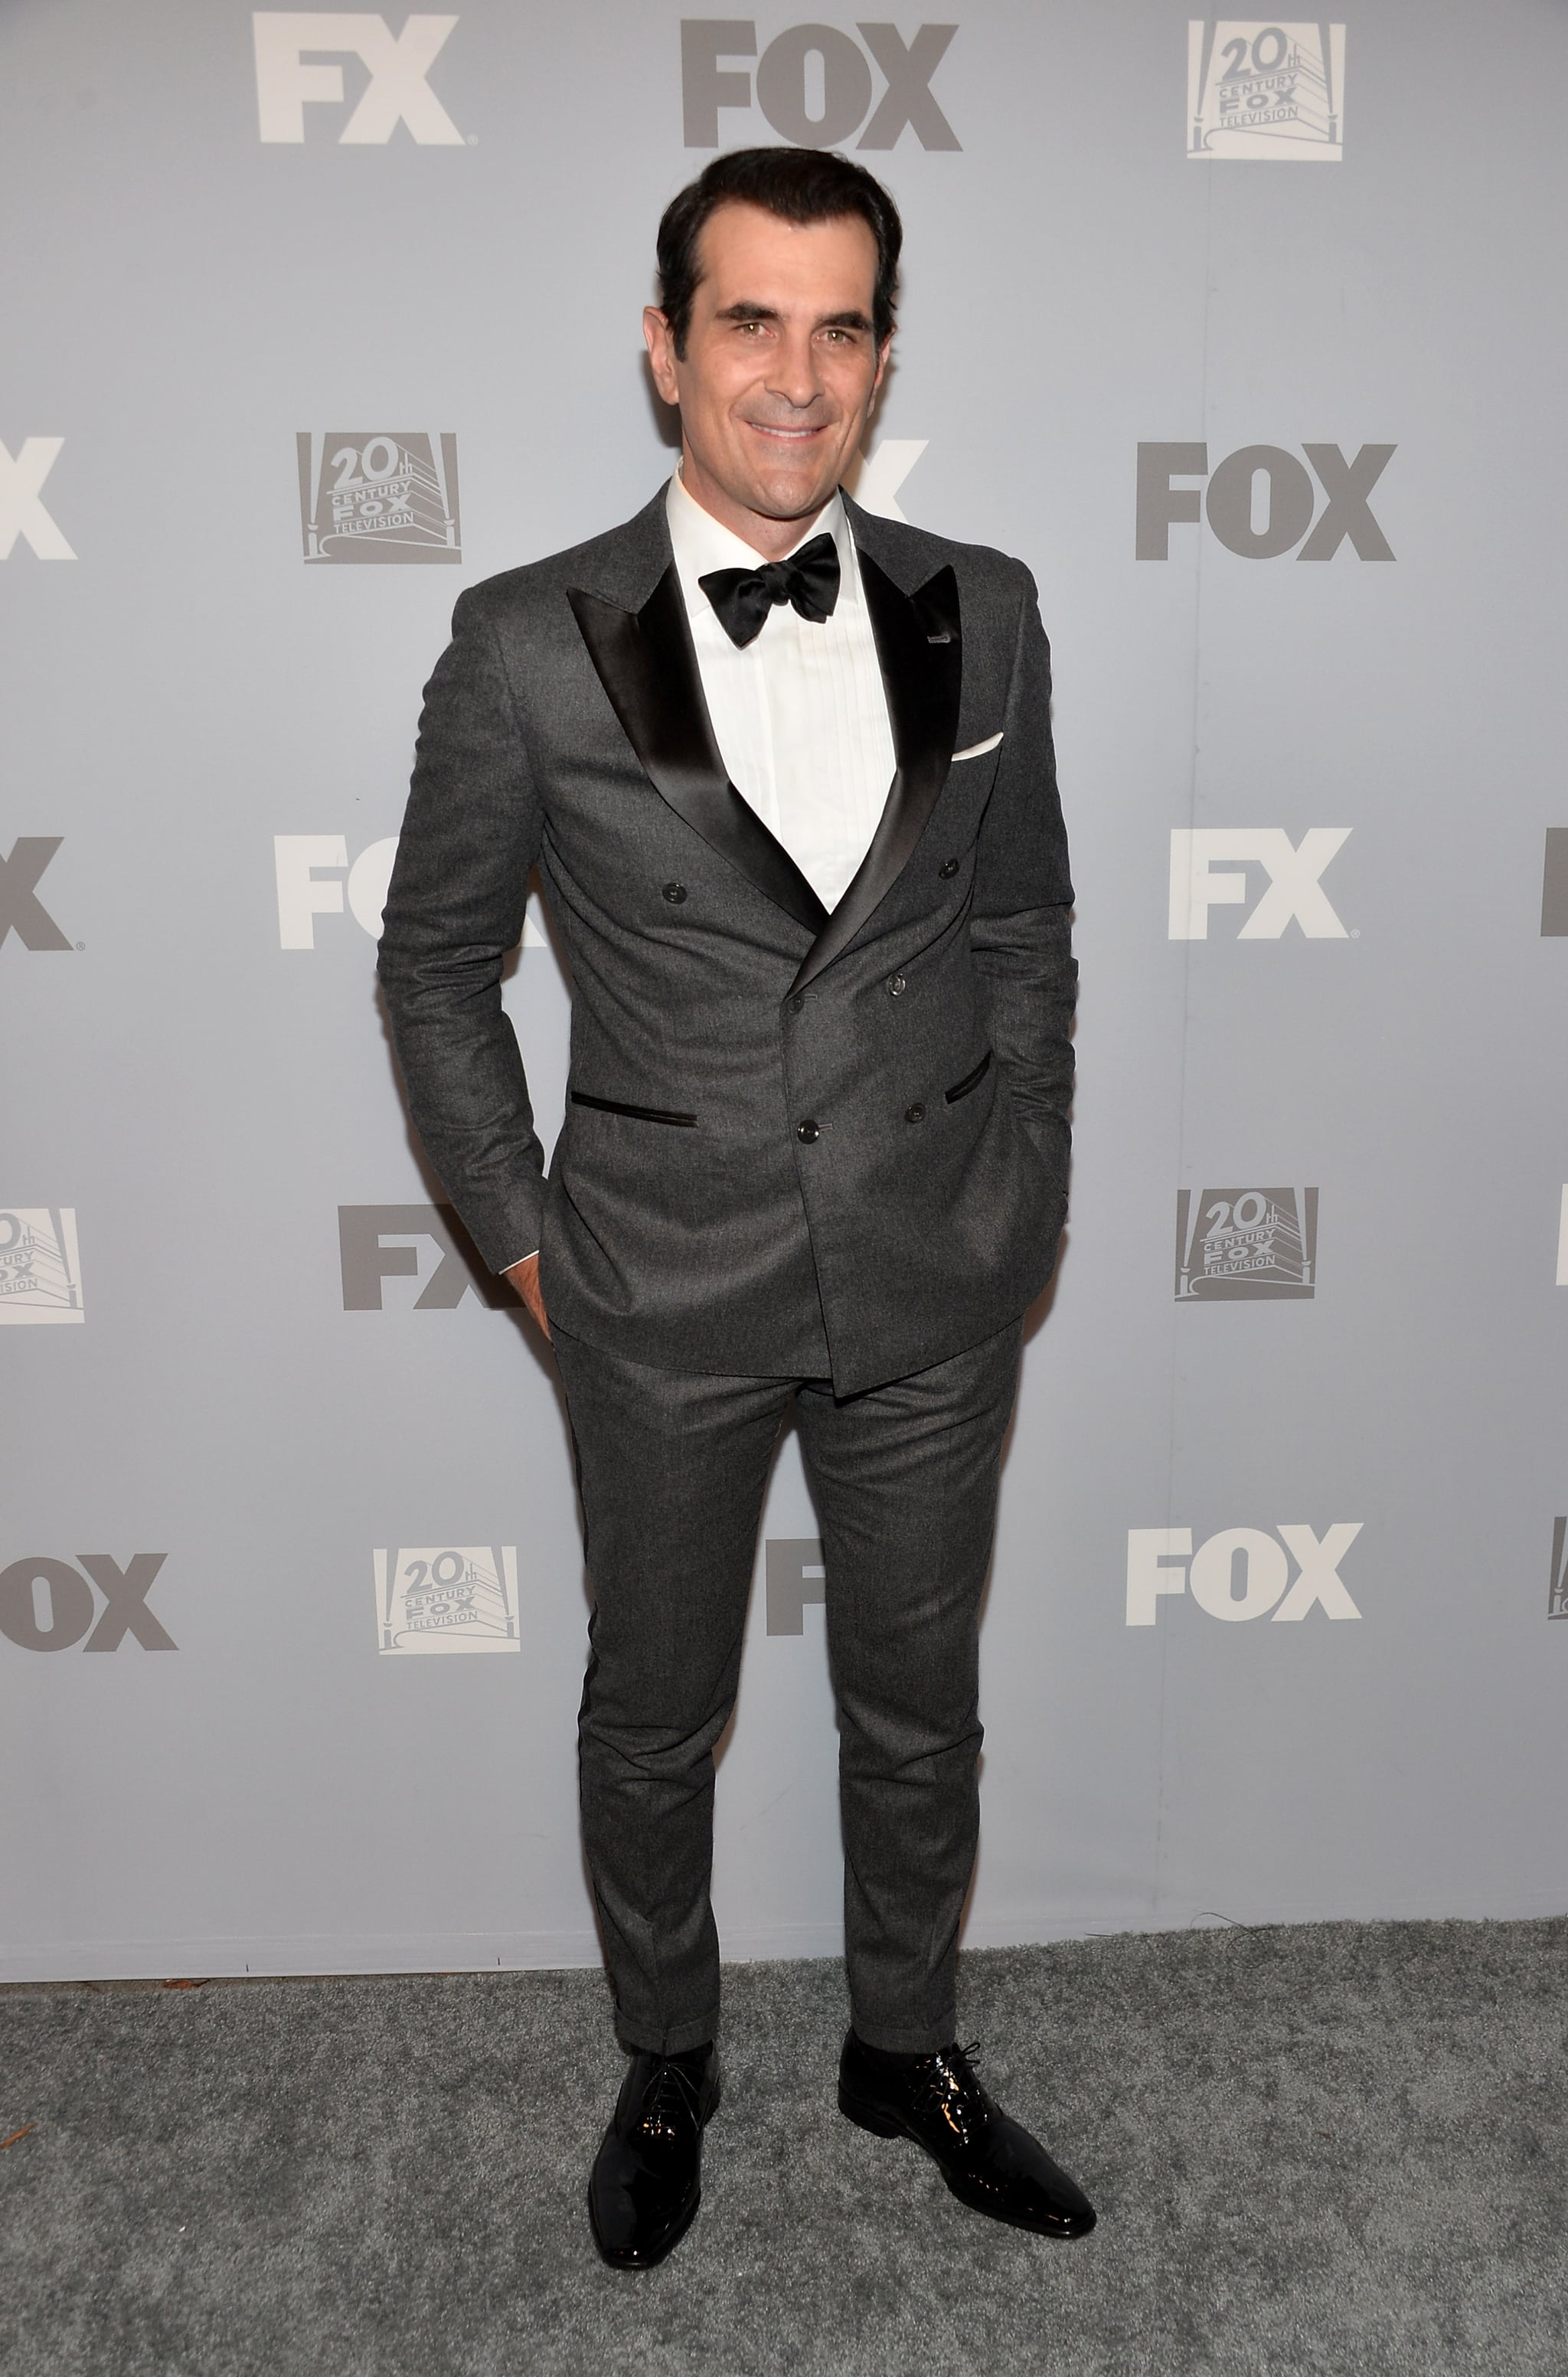 Ty Burrell attended Fox's Emmys afterparty in LA.